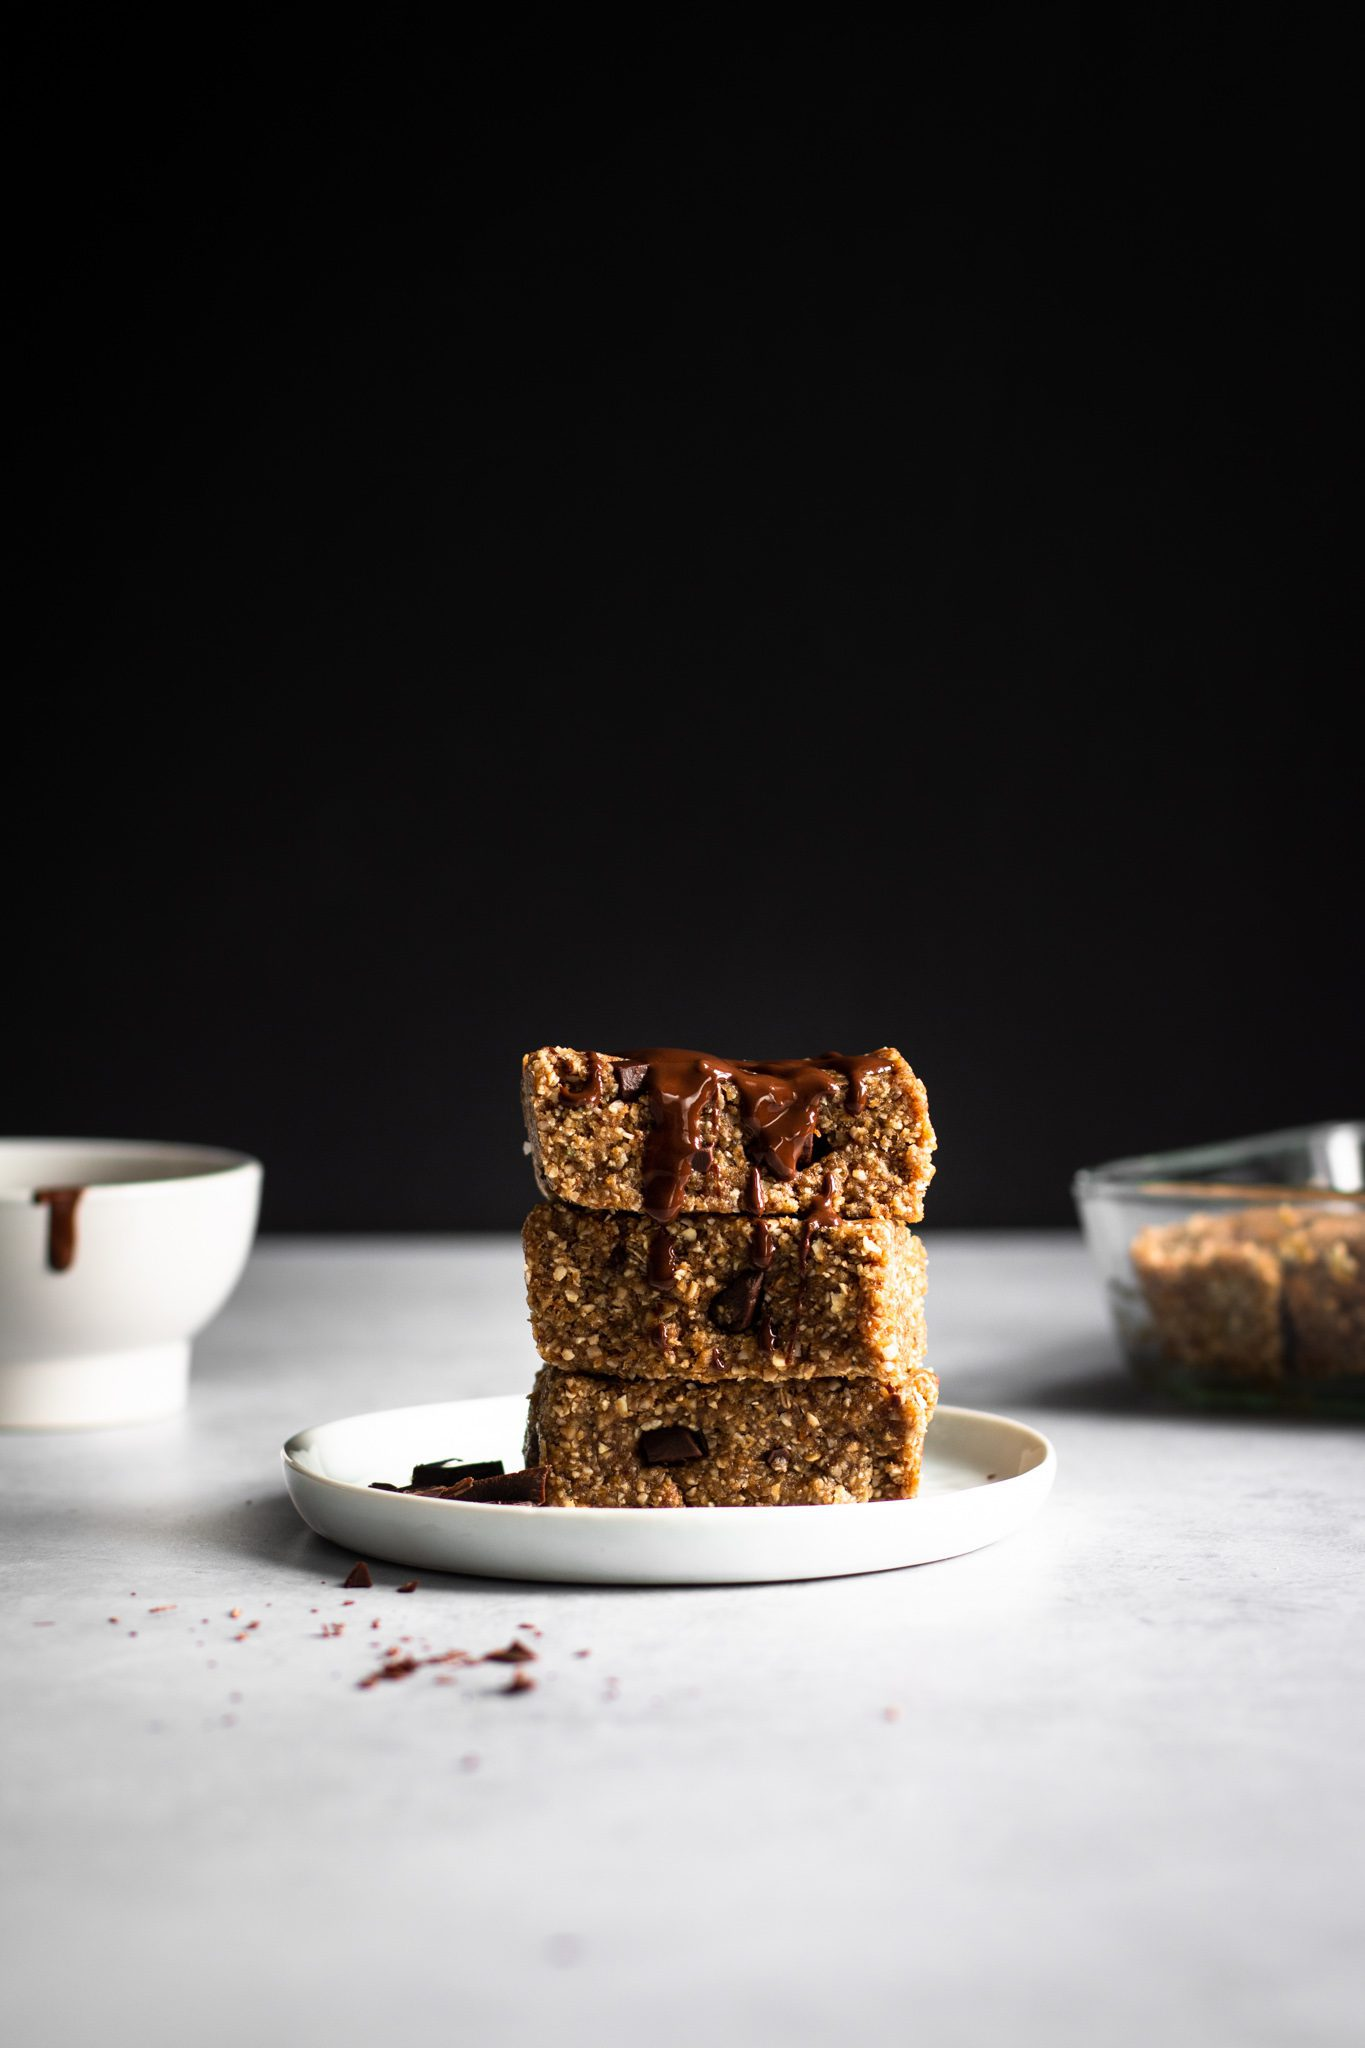 chocolate chunk protein bars on a plate